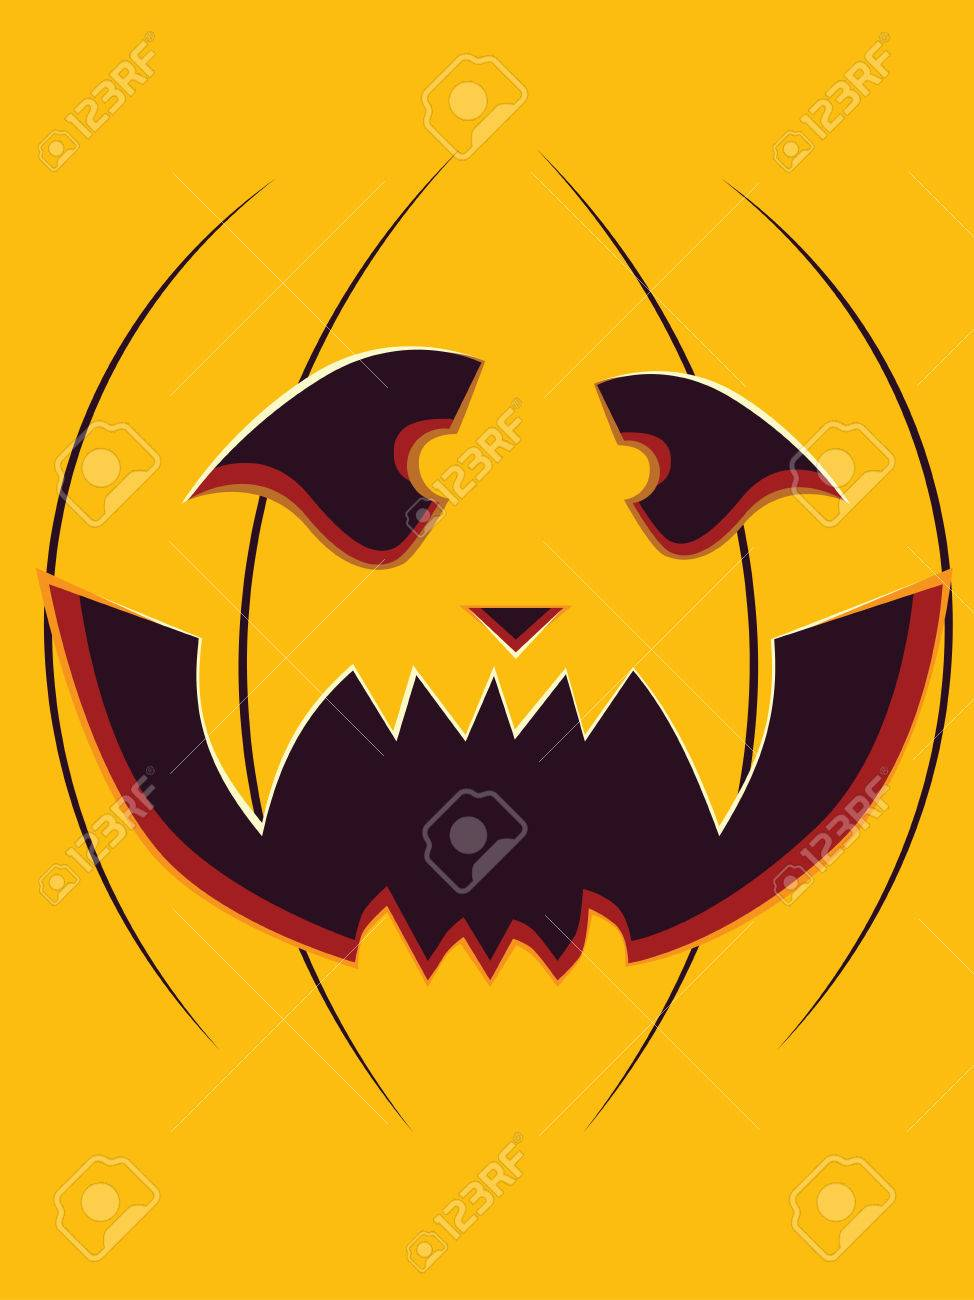 Happy Halloween Pumpkin Carving Face On Yellow Background Royalty Free Cliparts Vectors And Stock Illustration Image 33344381